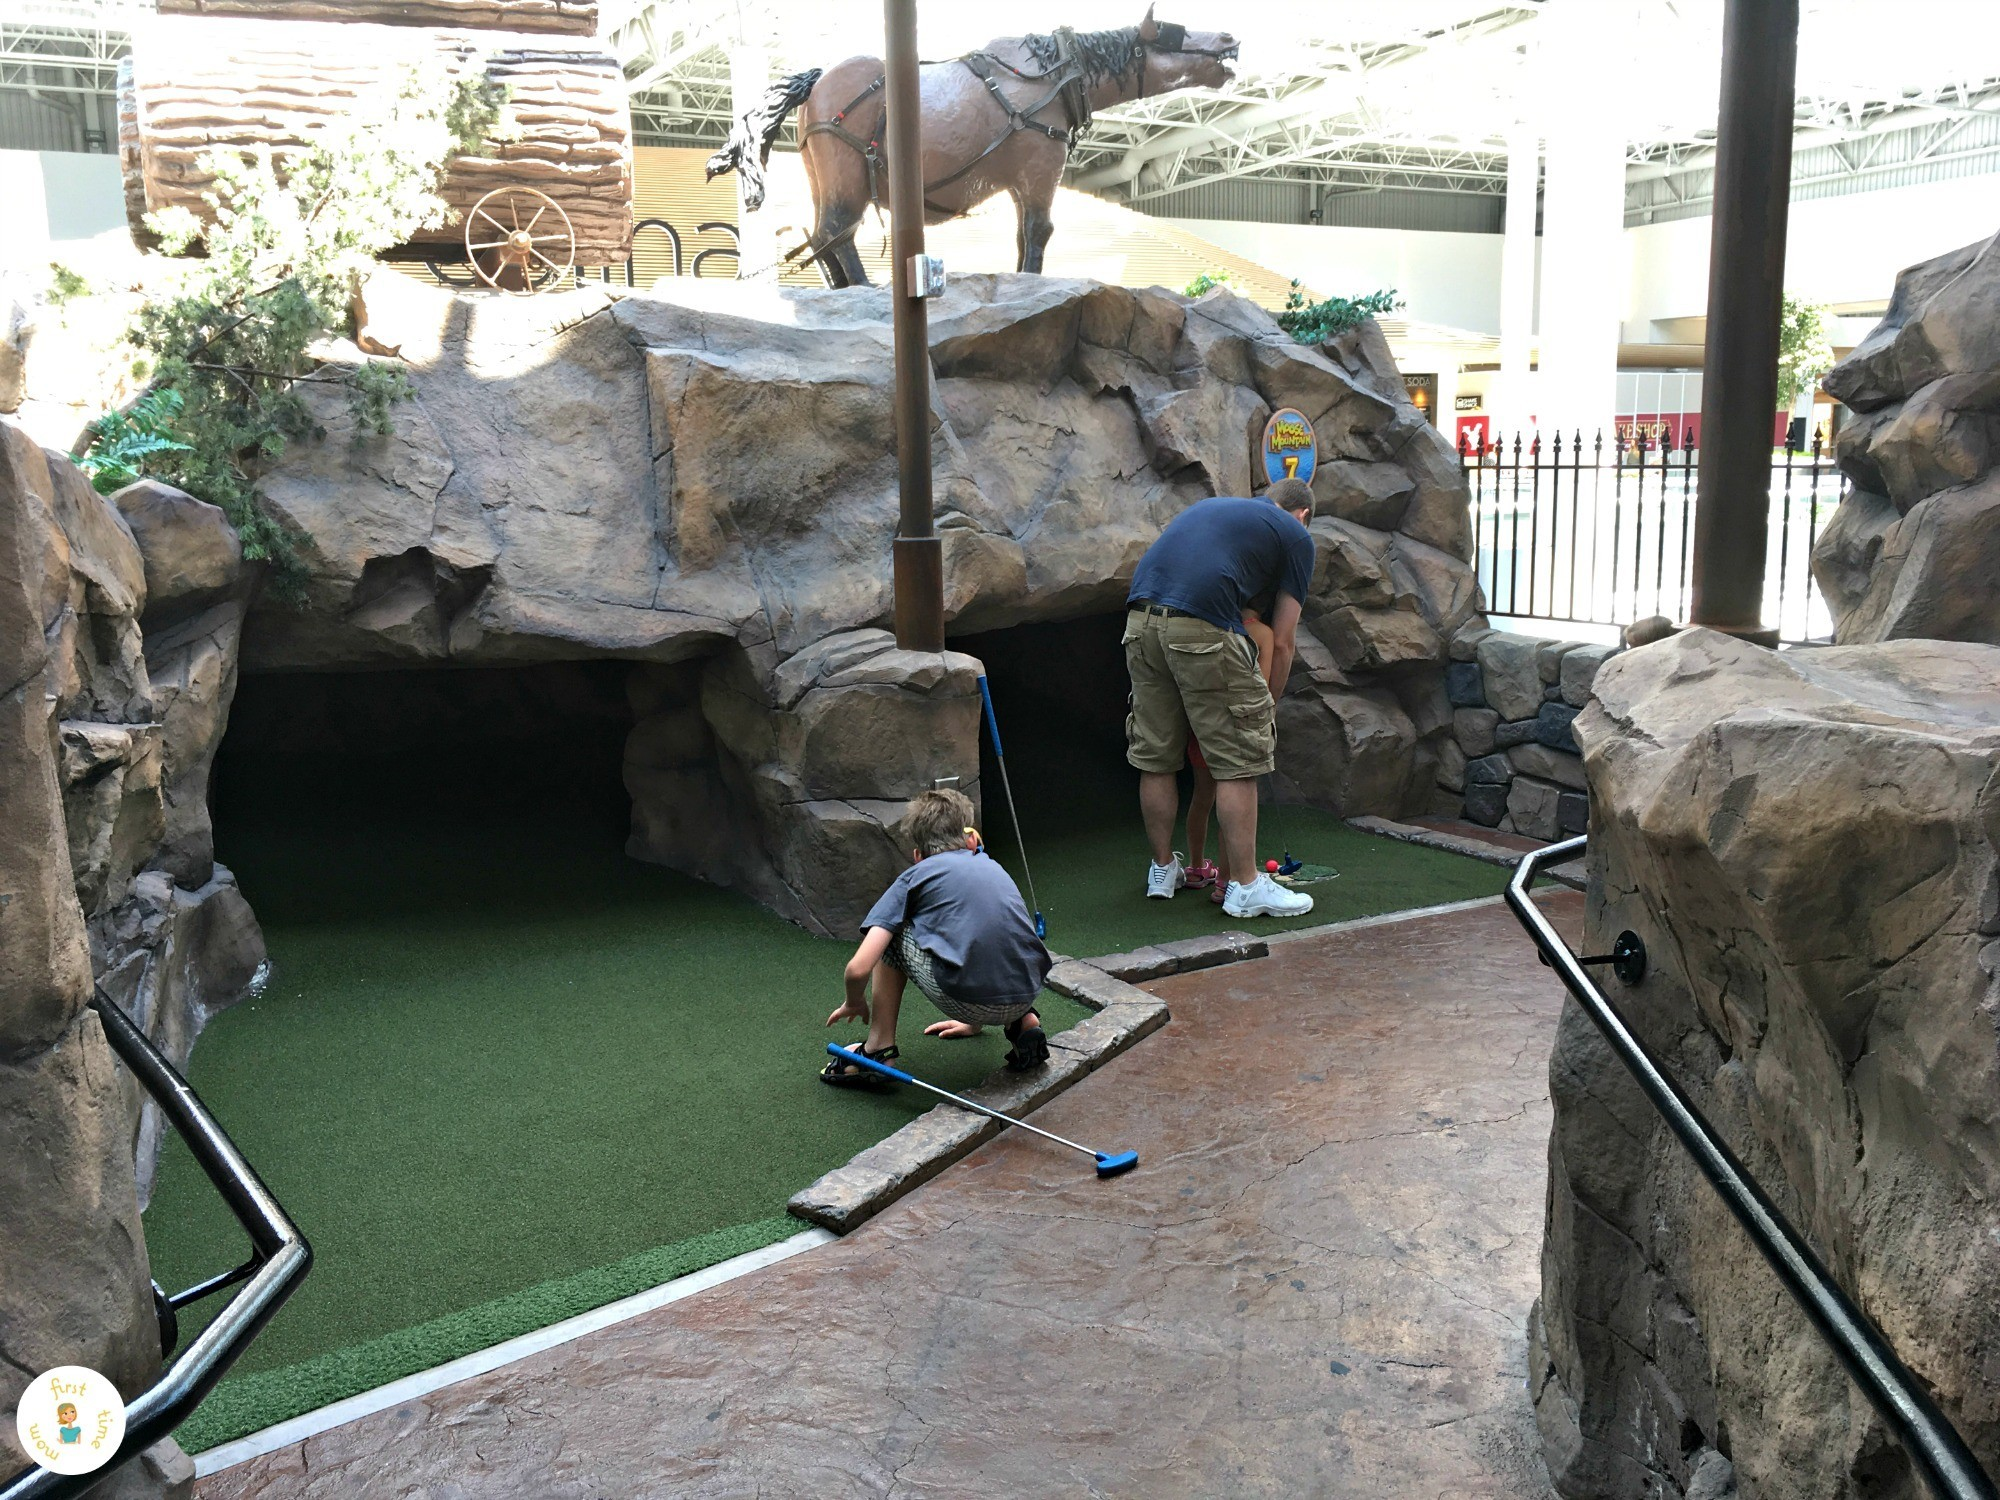 Moose Mountain Mini Golf